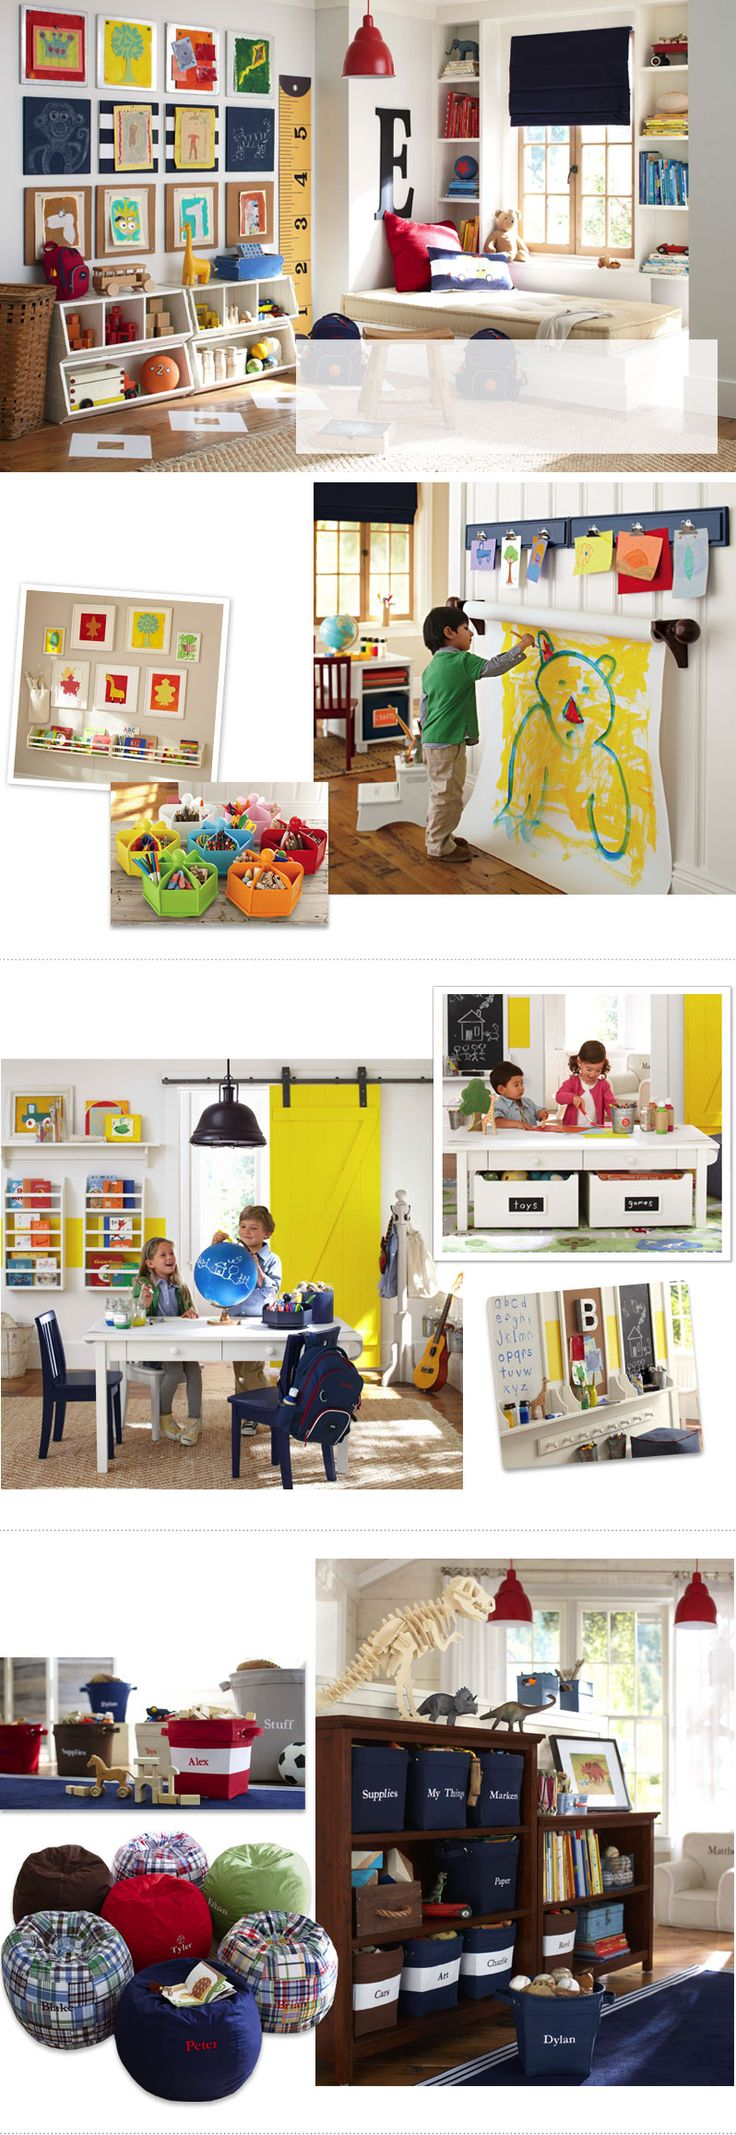 Play Room Ideas & Toy Room Ideas Pottery Barn Kids - love the row of cork boards for kids pictures. Can even paint over them with accent colors.